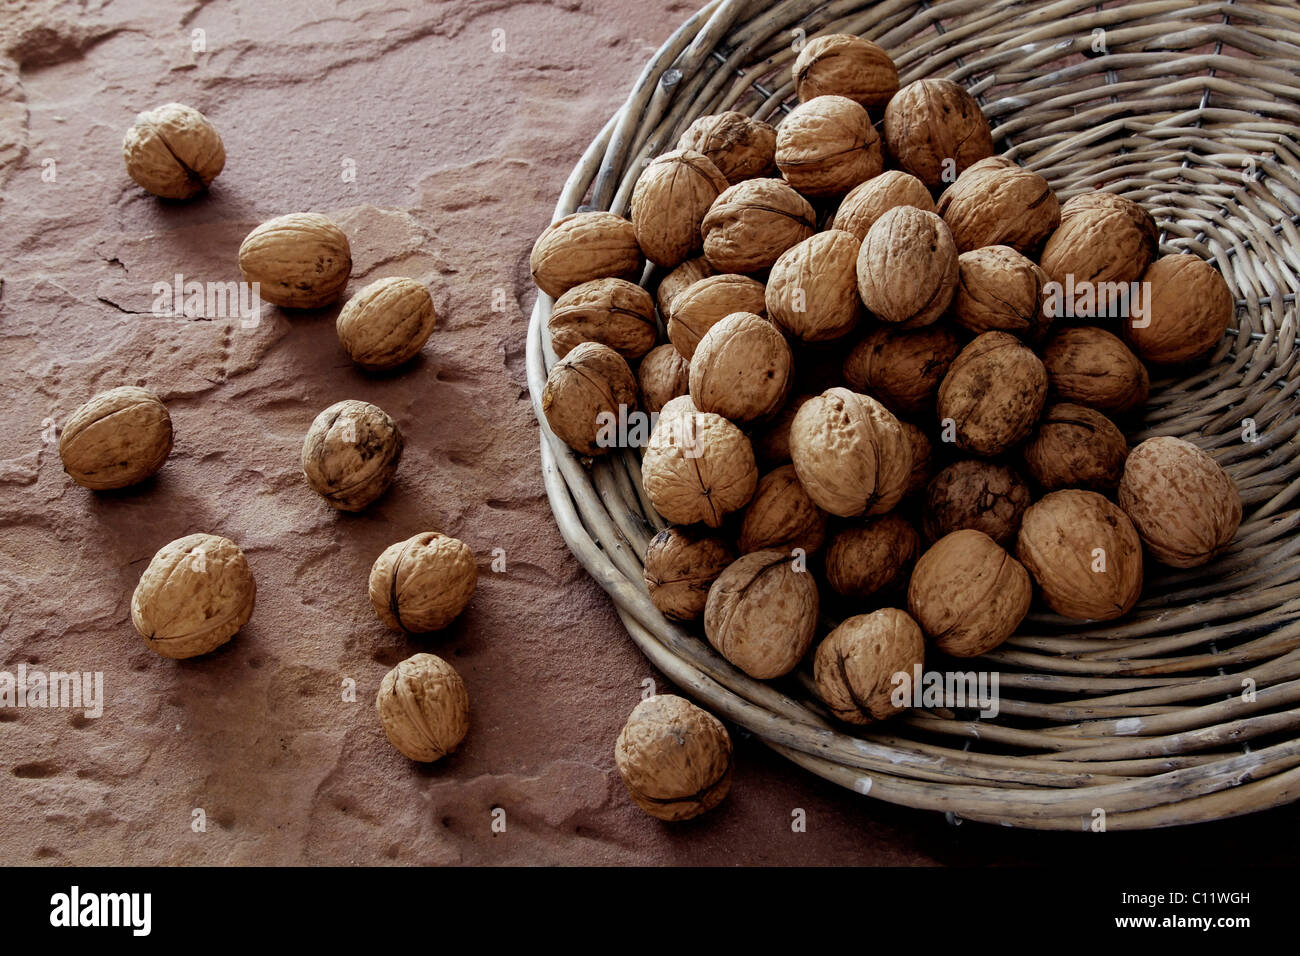 Walnuts (Juglans) tipped from a wicker plate on sandstone Stock Photo